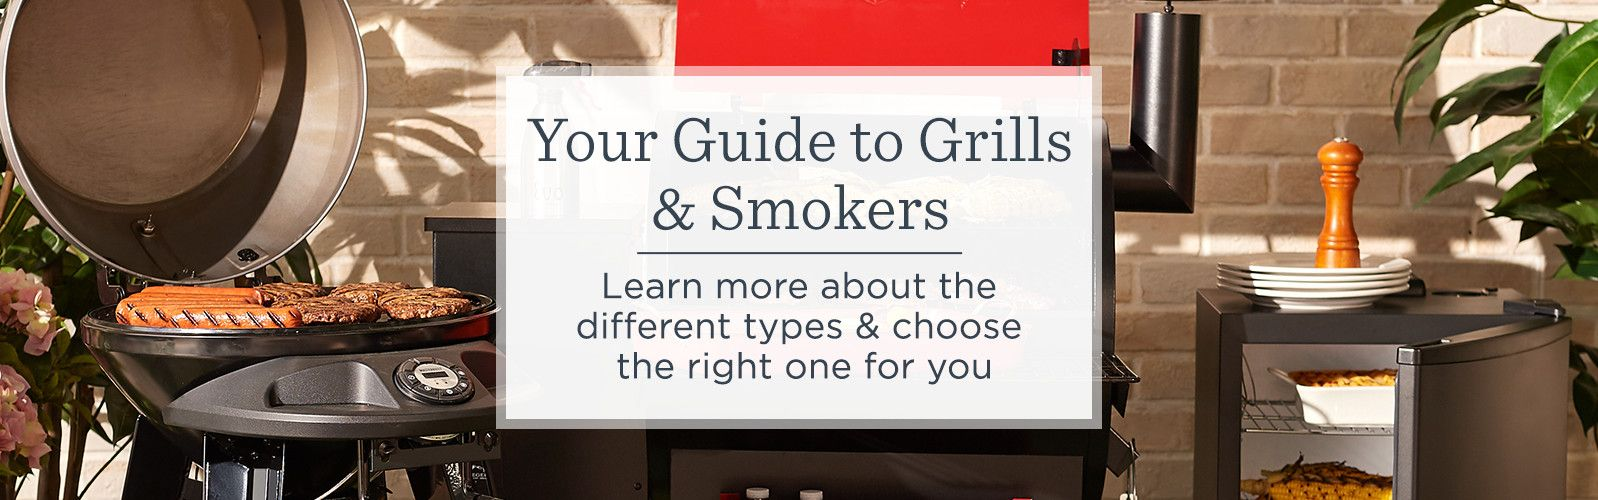 Your Guide to Grills & Smokers  --  Learn more about the different types & choose the right one for you